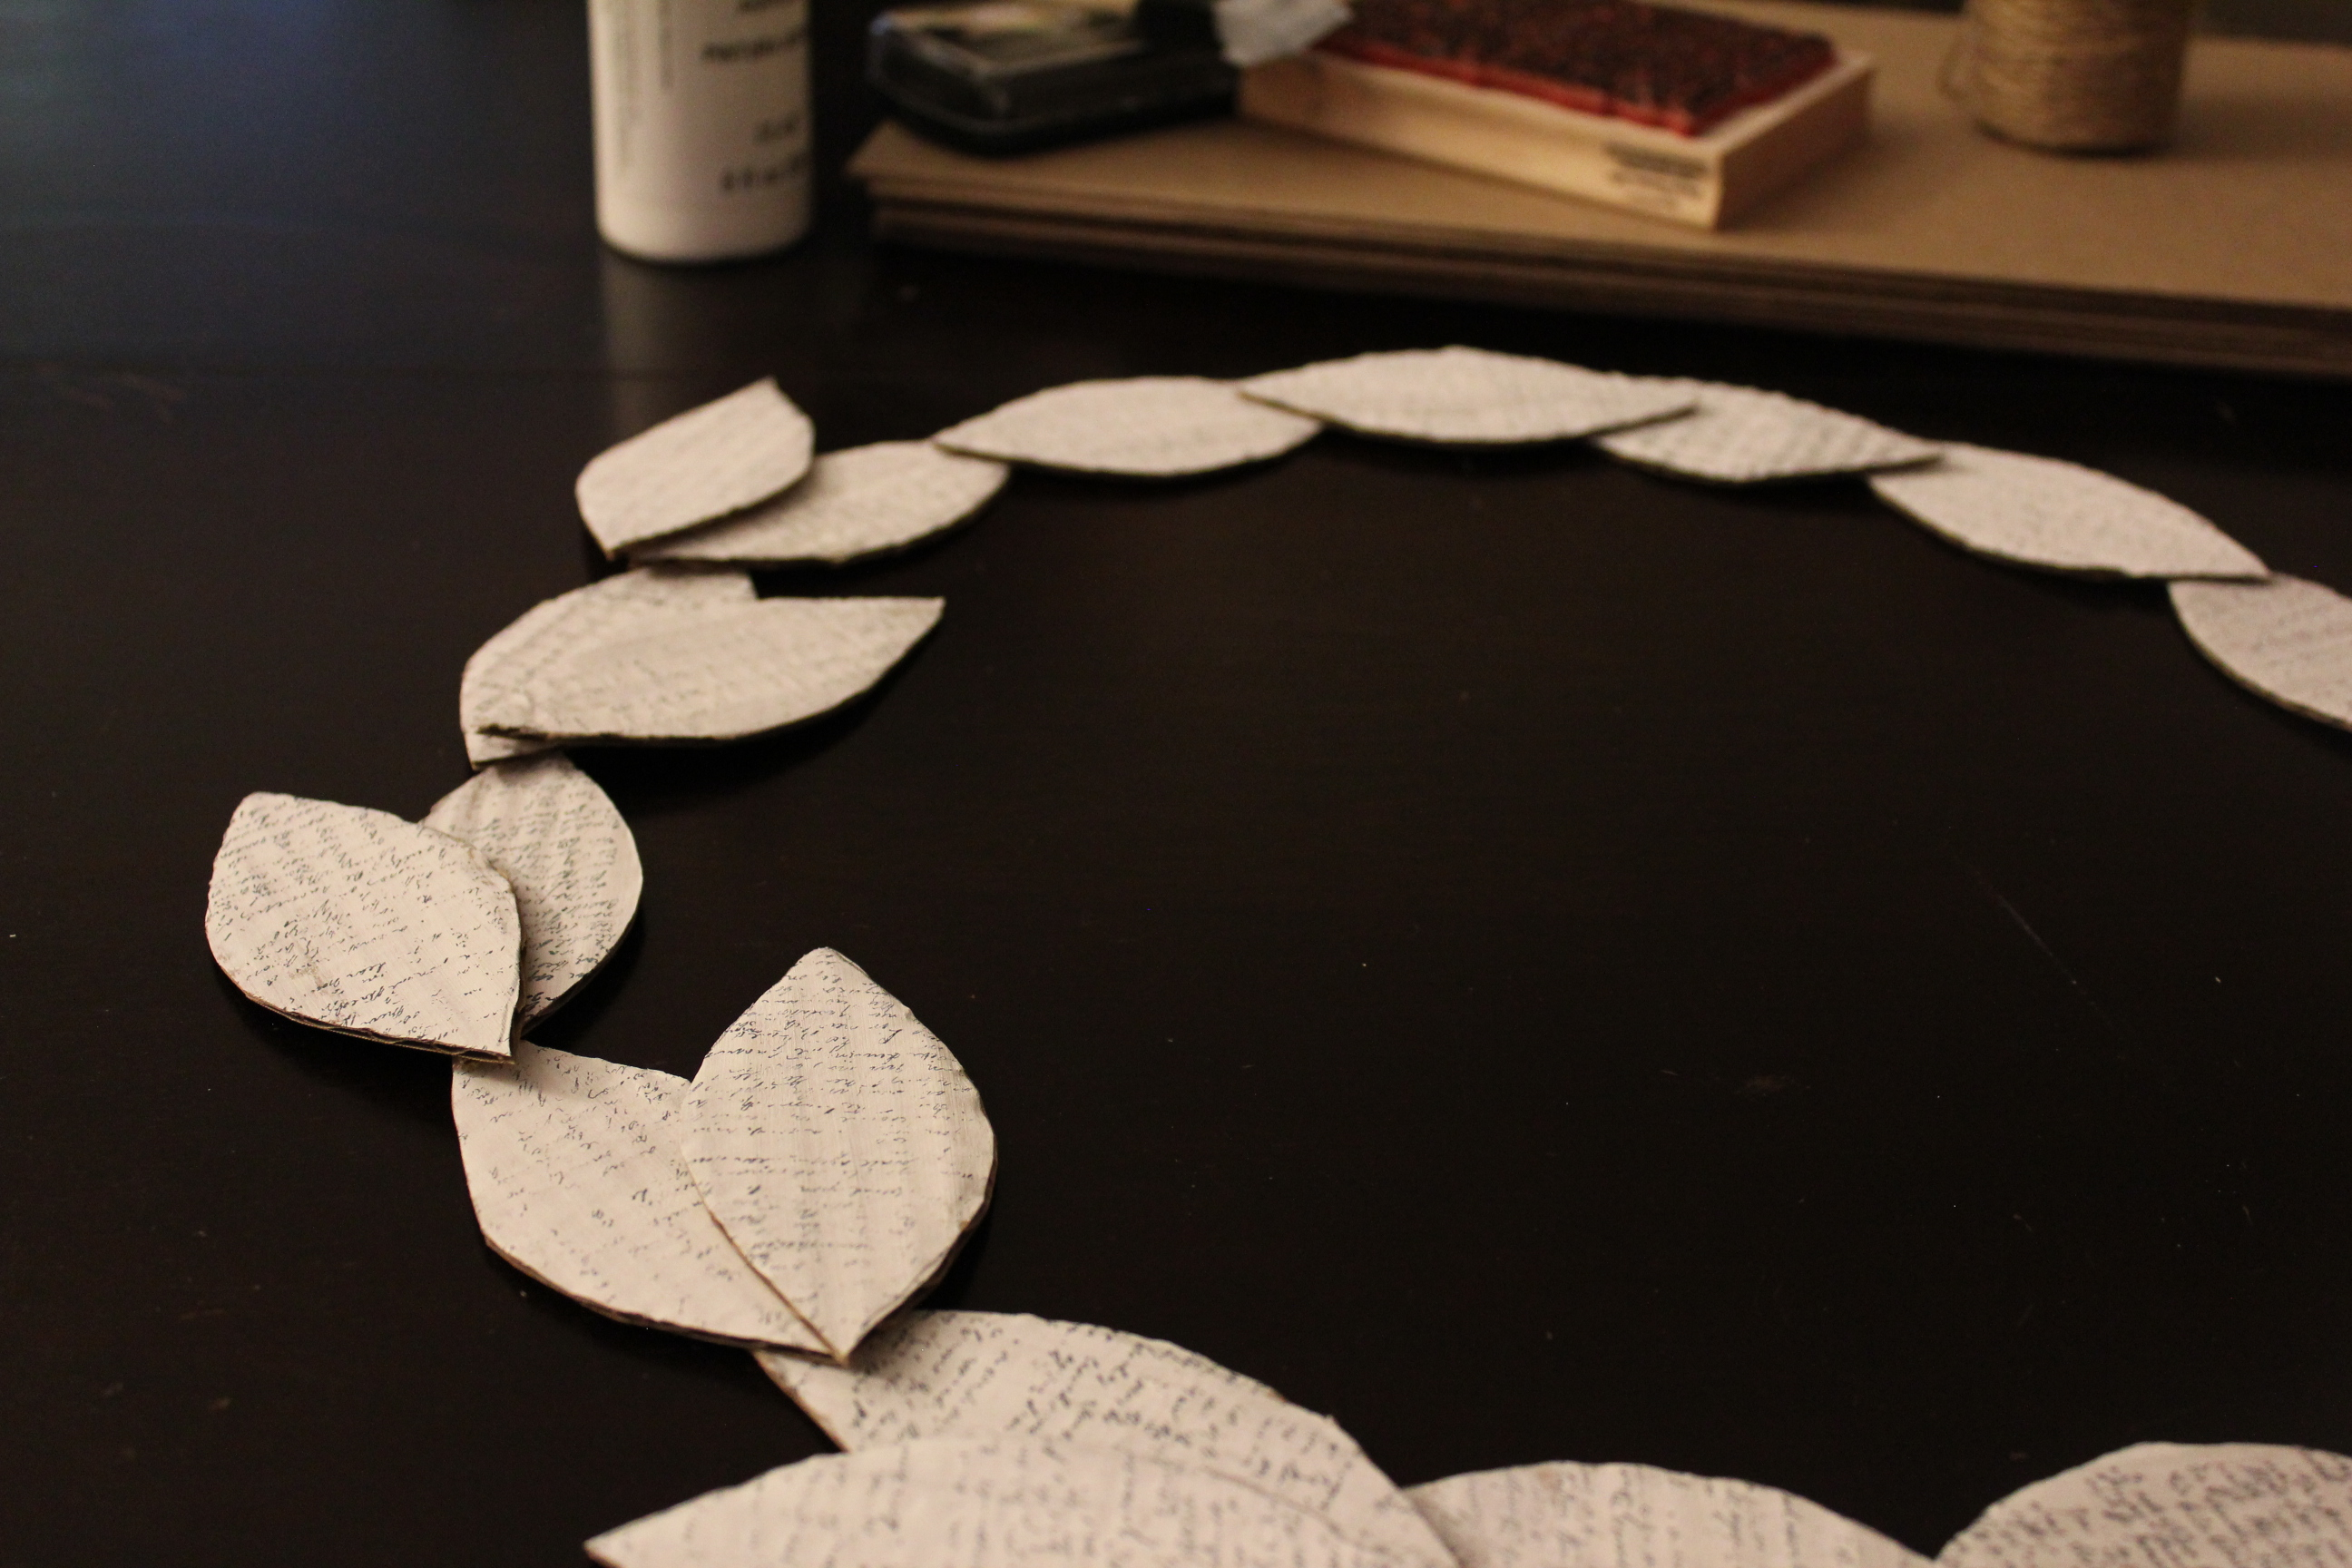 Arrange leaves in an alternating pattern